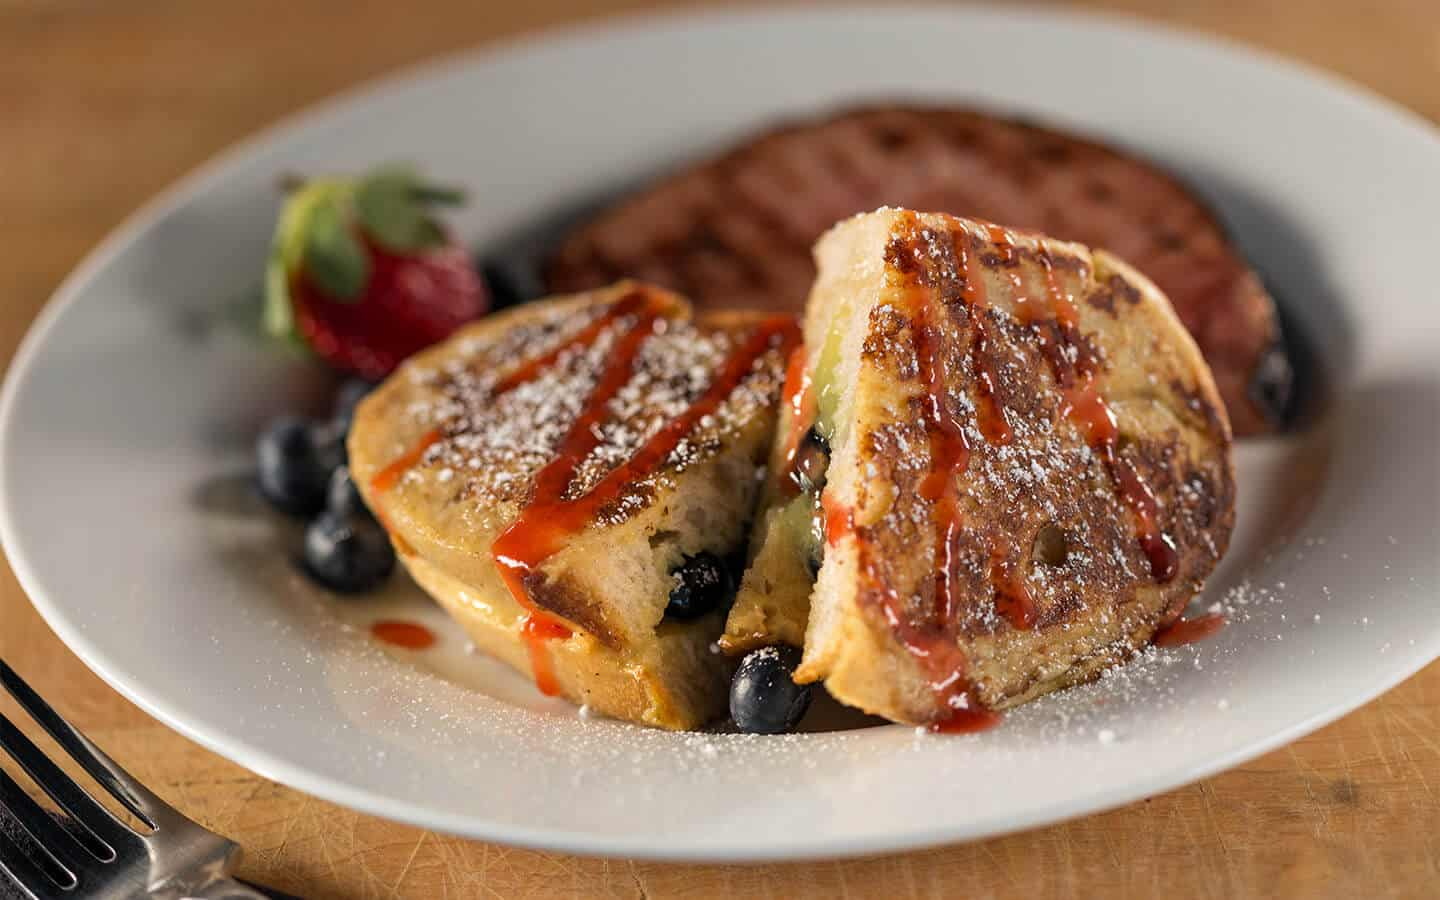 French Toast with Blueberries Breakfast